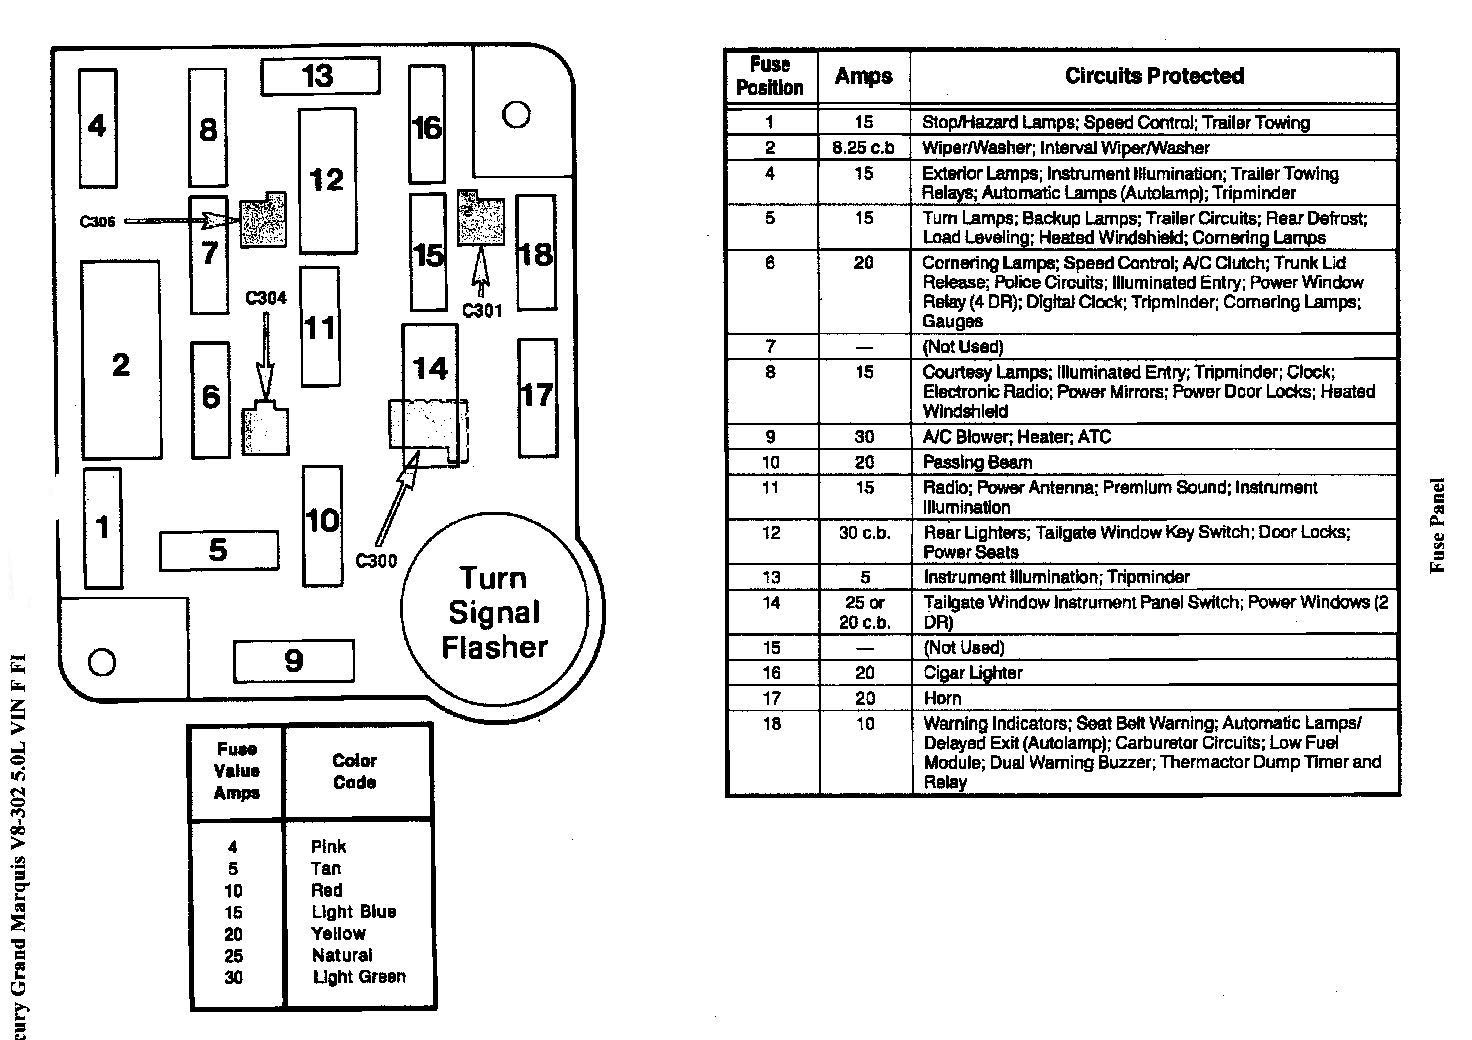 Fuse Diagram For 1999 Grand Marquis Wiring Diagram General A General A Emilia Fise It